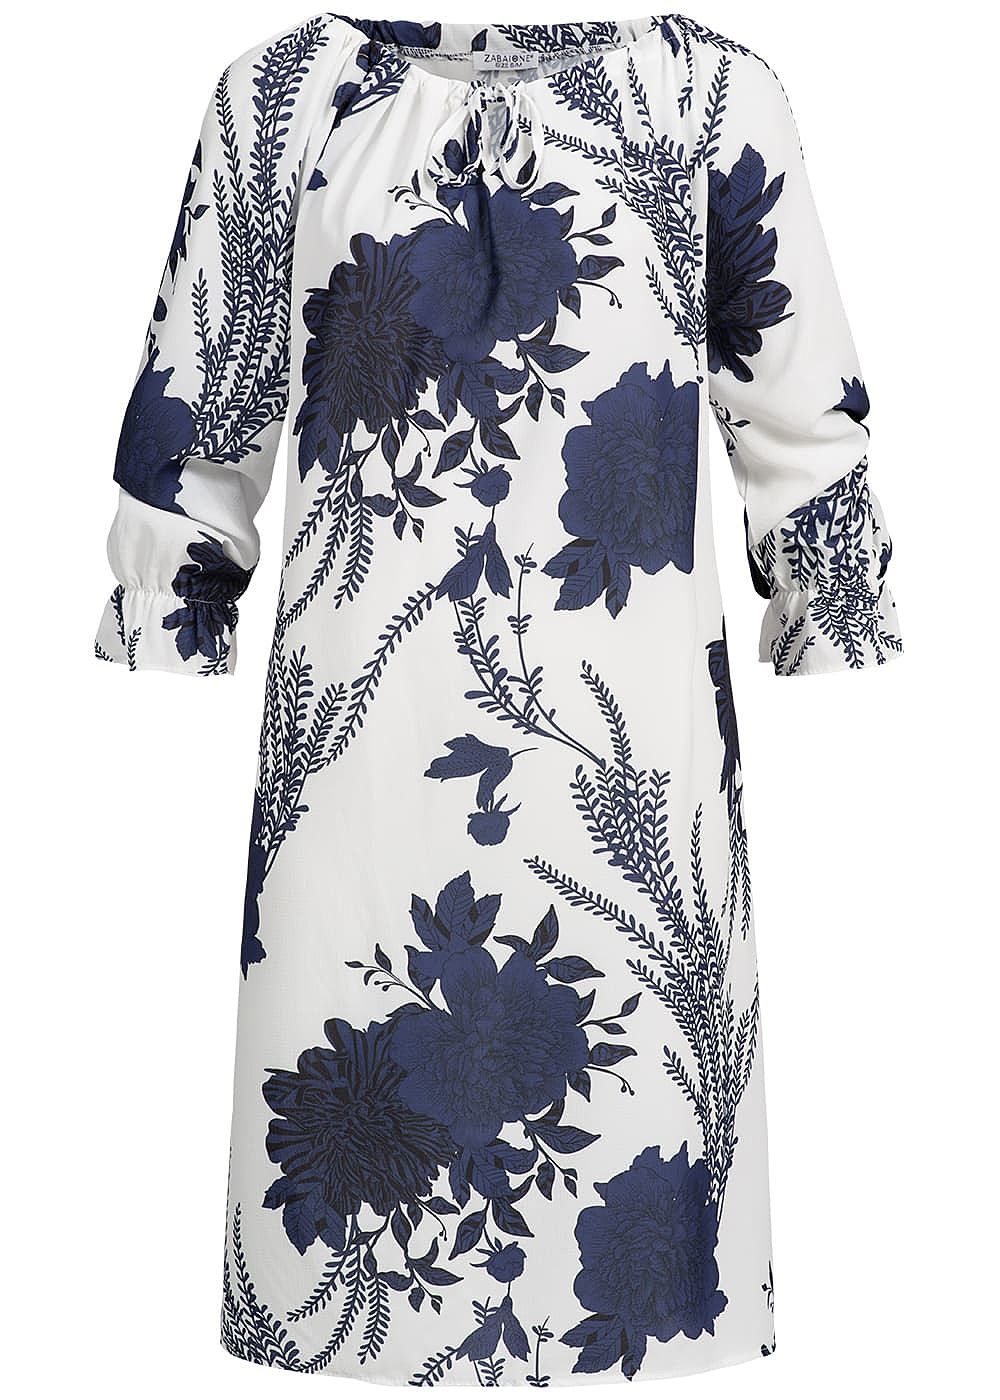 Zabaione Damen Oversized Off-Shoulder Dress Flower Print navy blau weiss - Art.-Nr.: 19020687